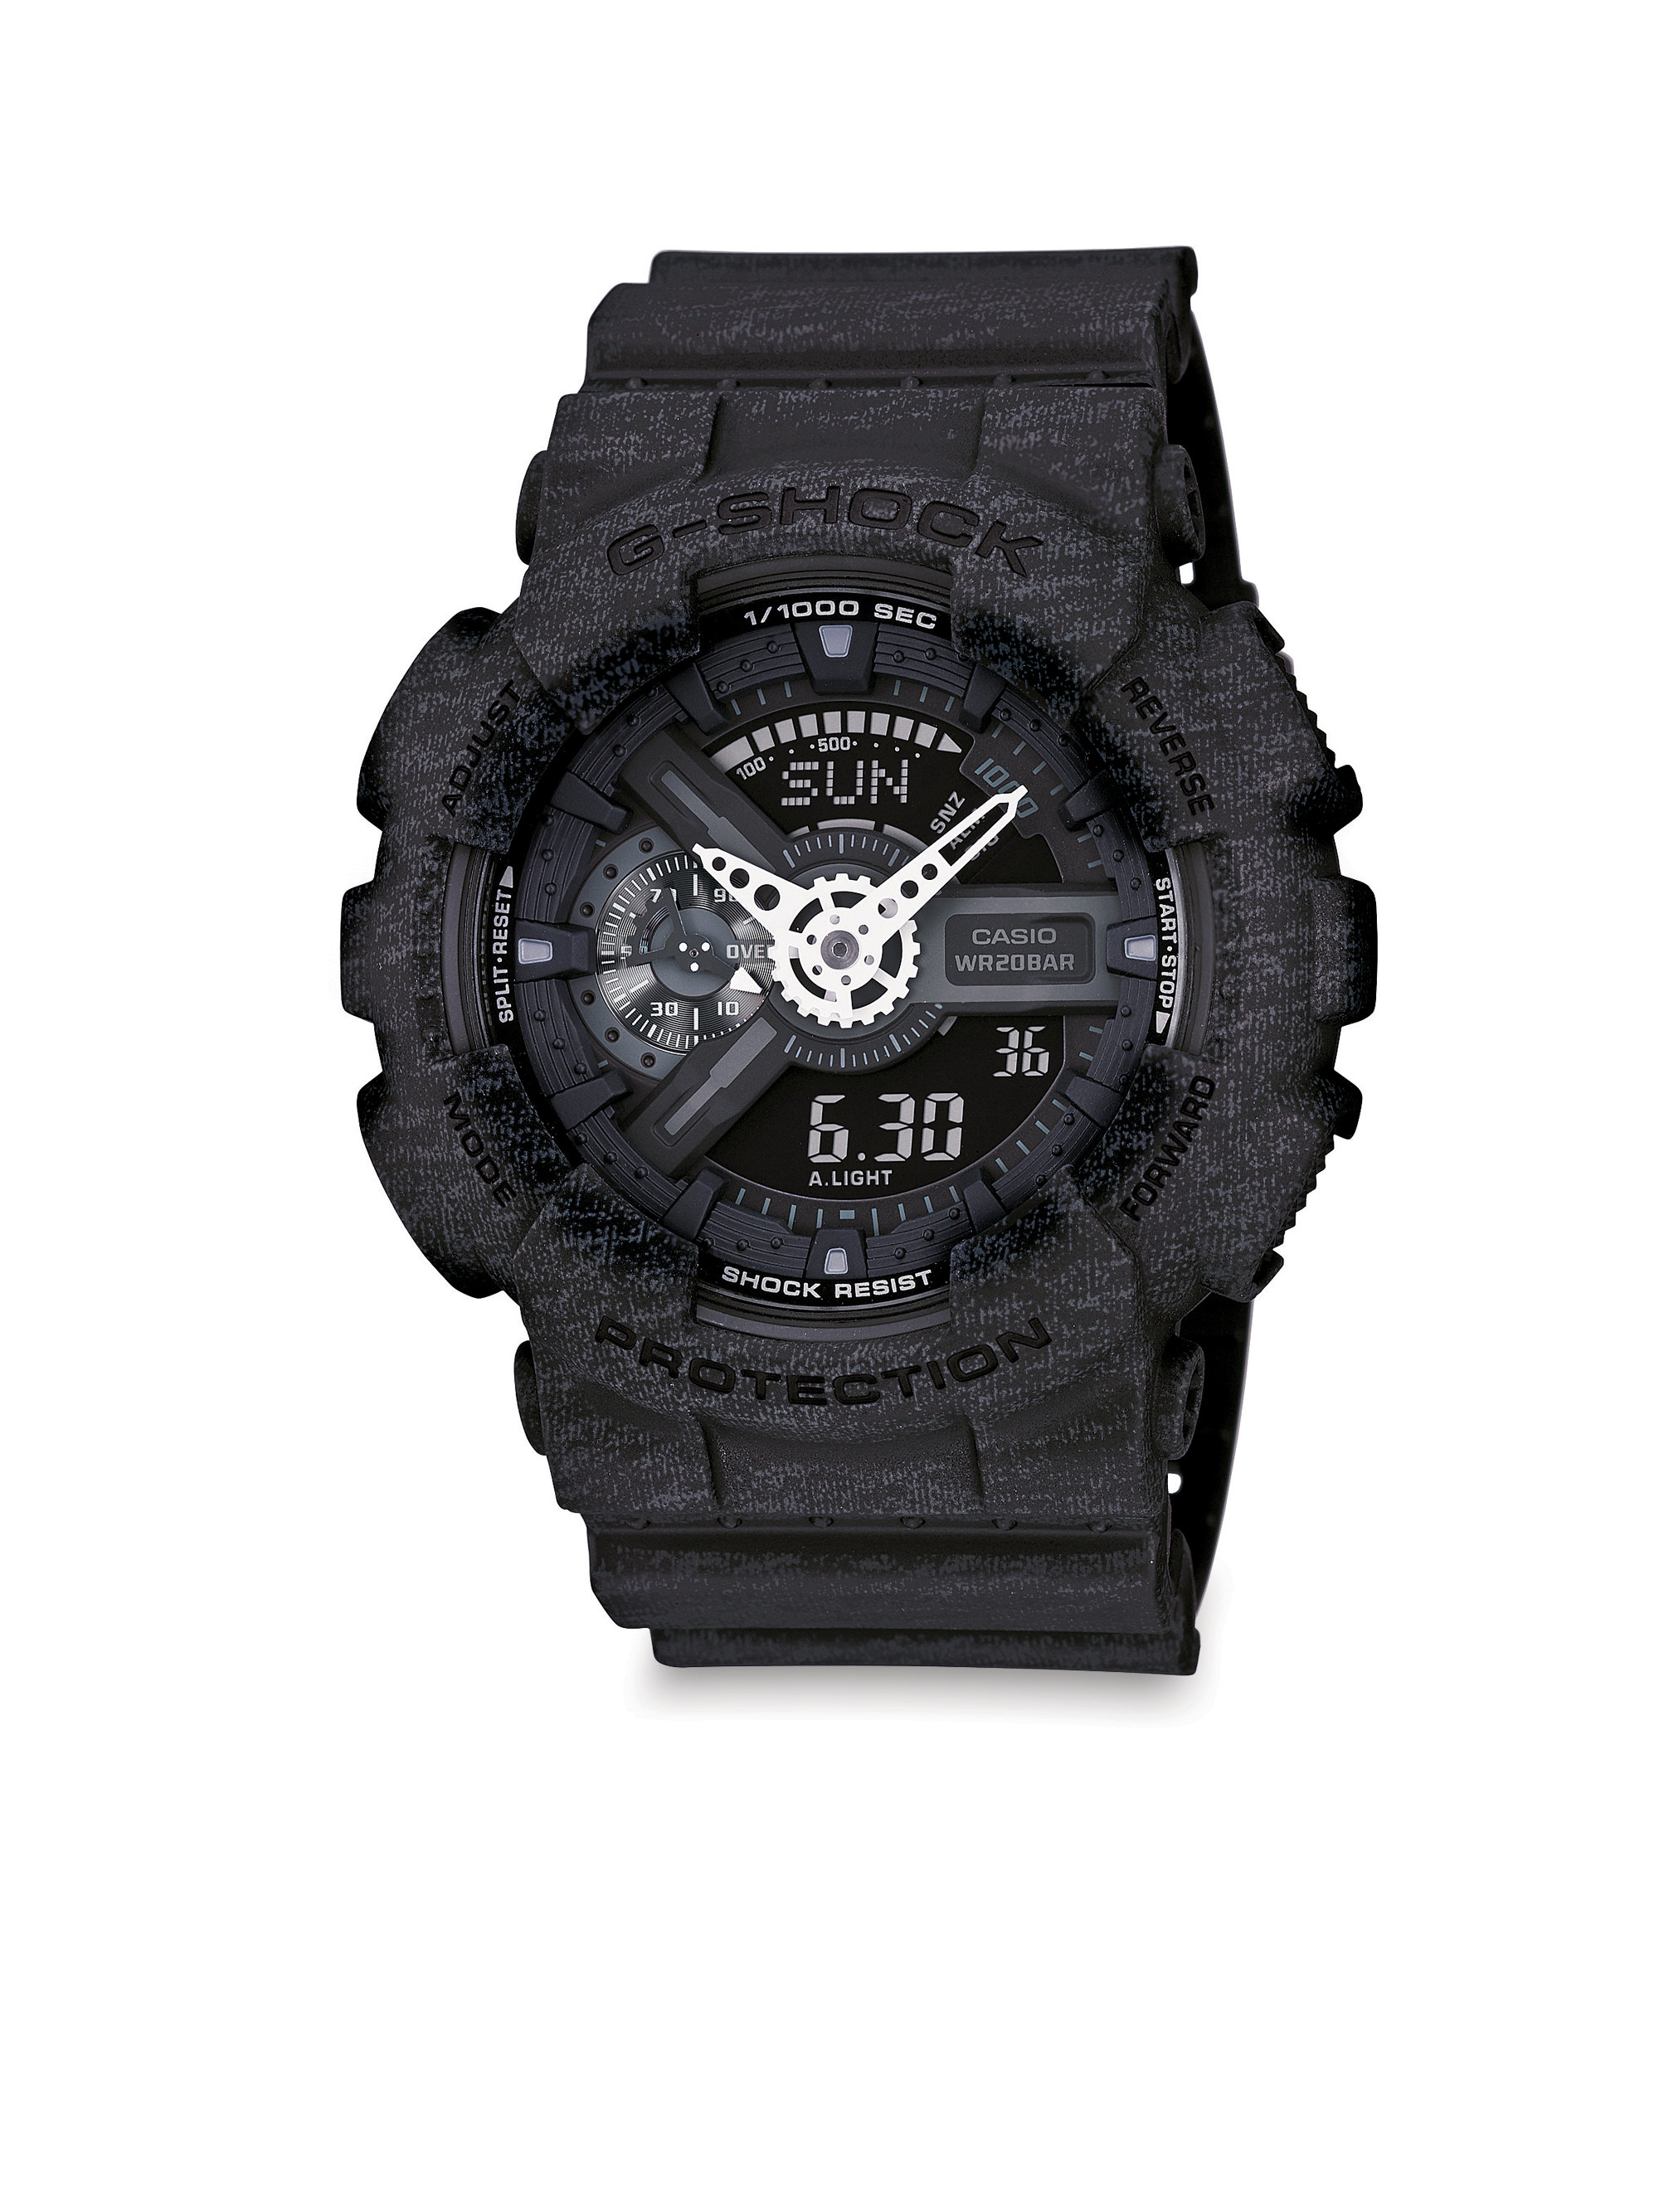 Black Digital Watches